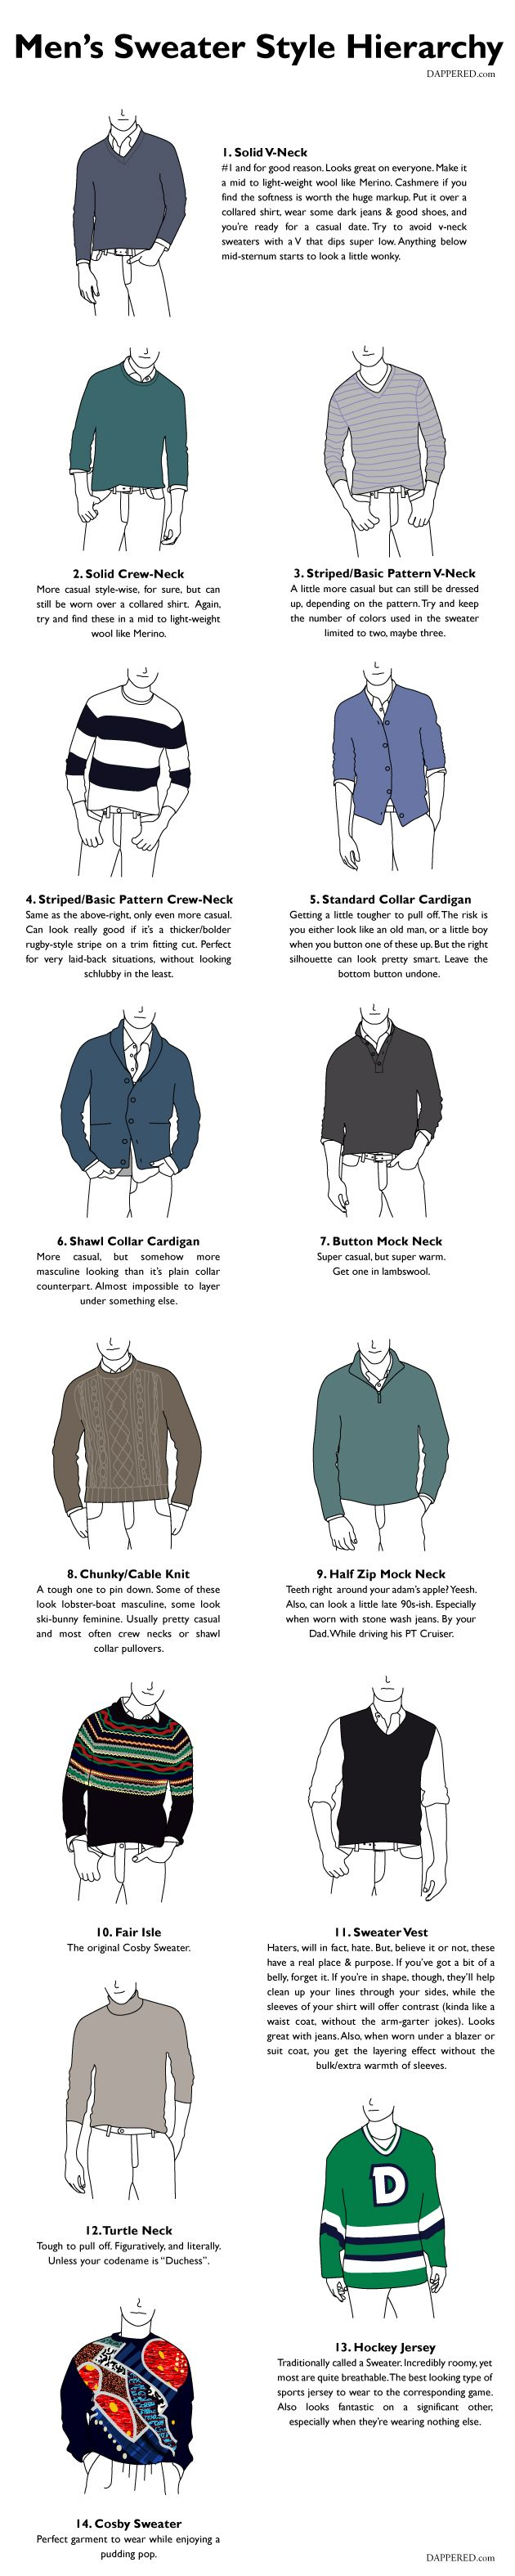 mens sweater style heirarchy fashion statement